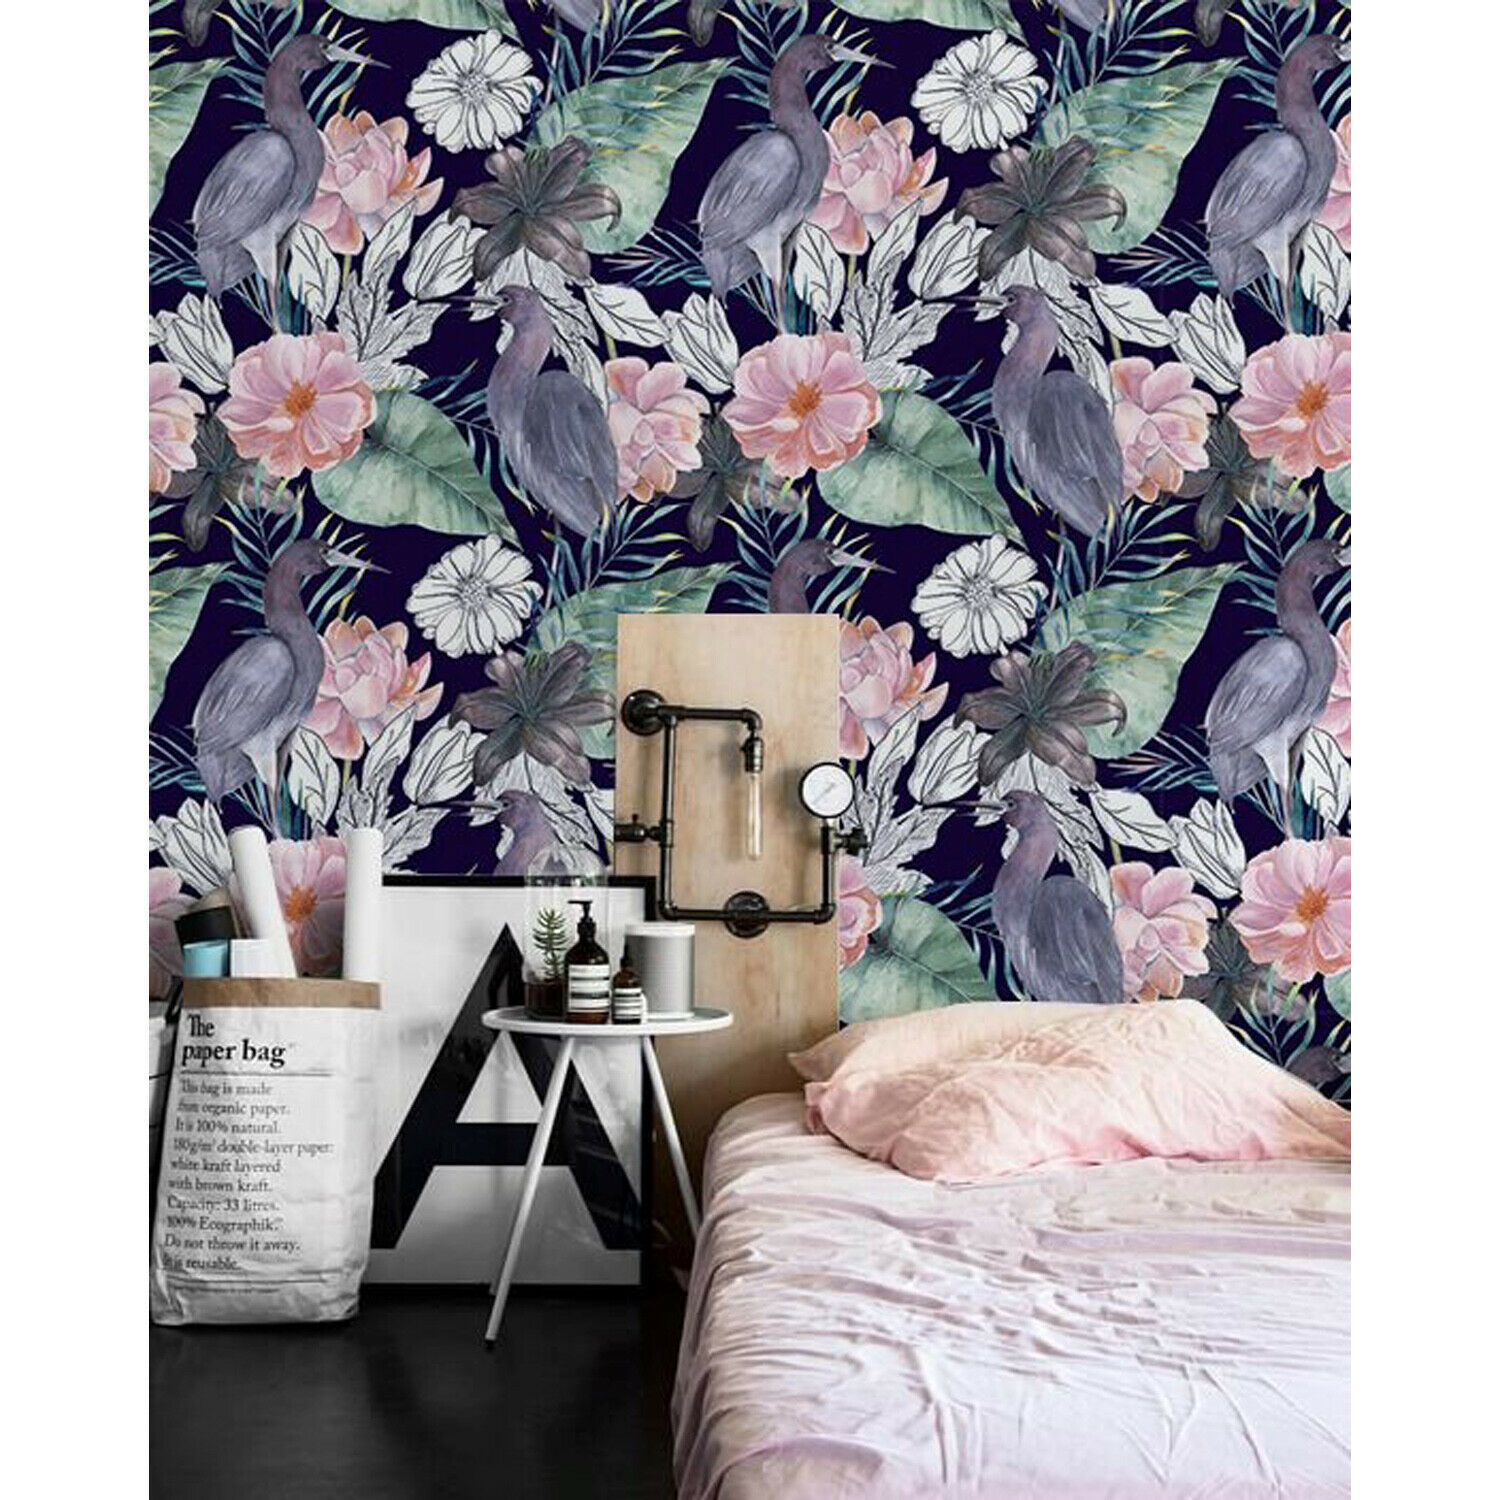 Cranes with flowers Removable wallpaper watercolor colorful Home Decor